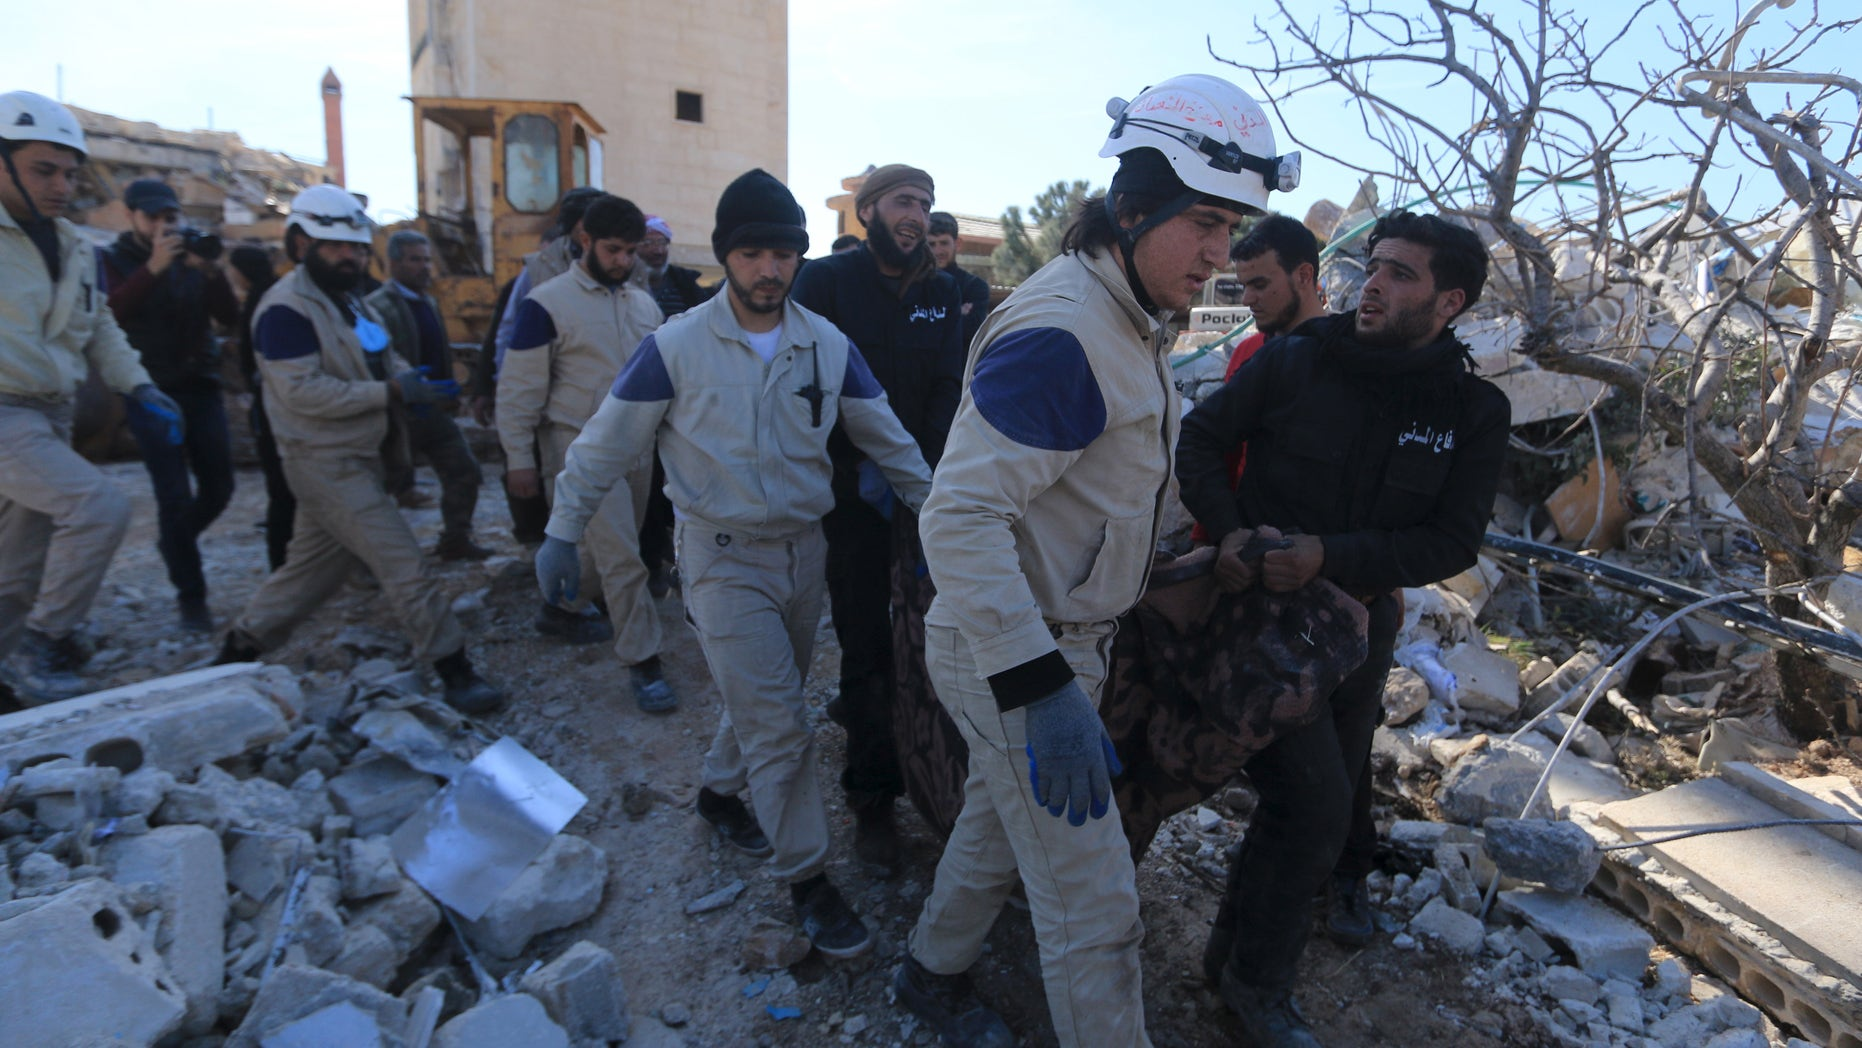 Feb 16., 2016: People and Civil Defense members carry a victim from a destroyed Doctors Without Borders hospital in Syria. (Reuters)